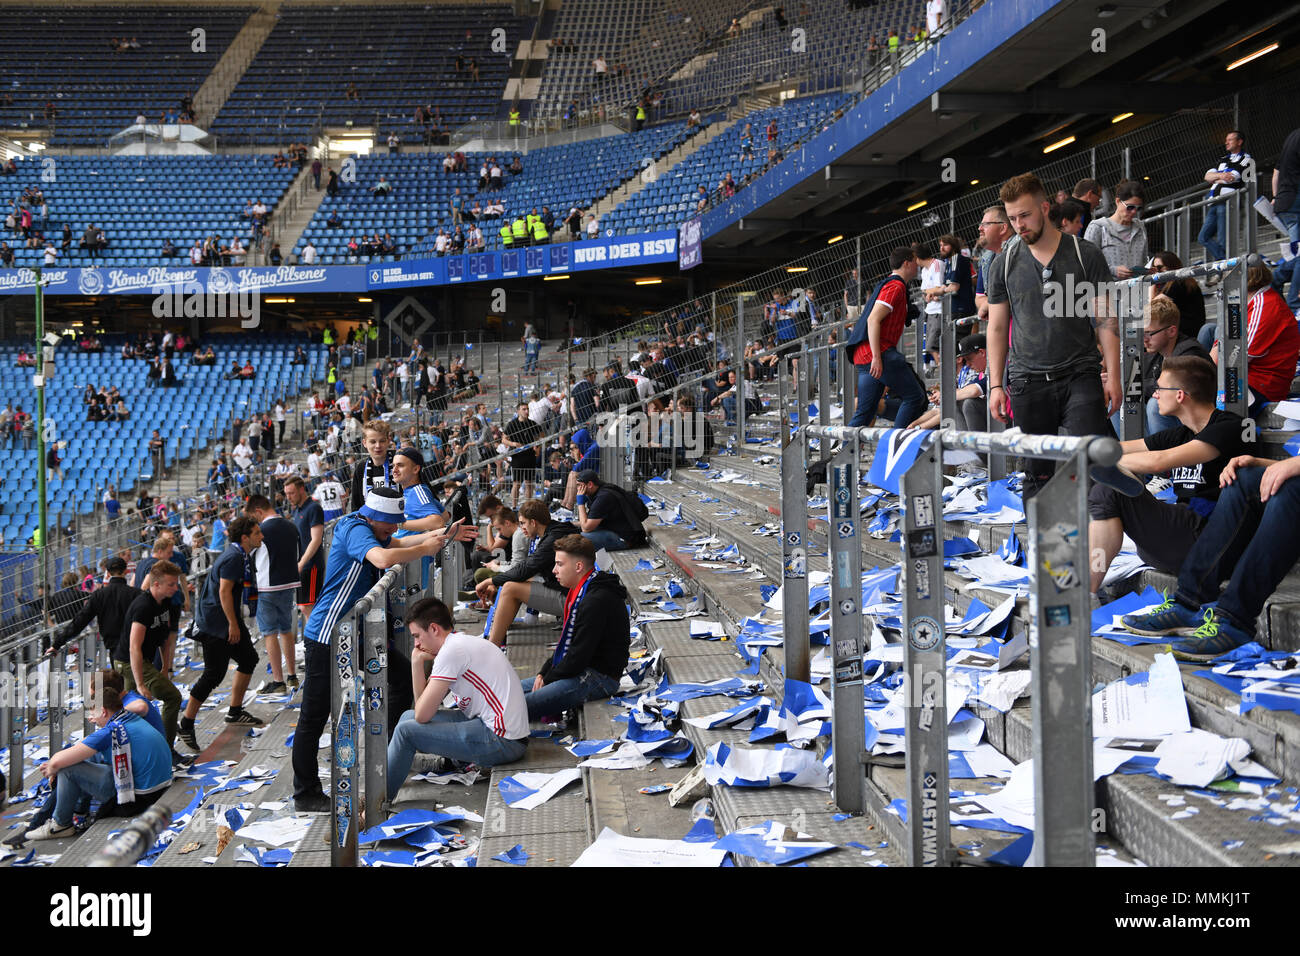 Hsv Hamburg High Resolution Stock Photography And Images Alamy